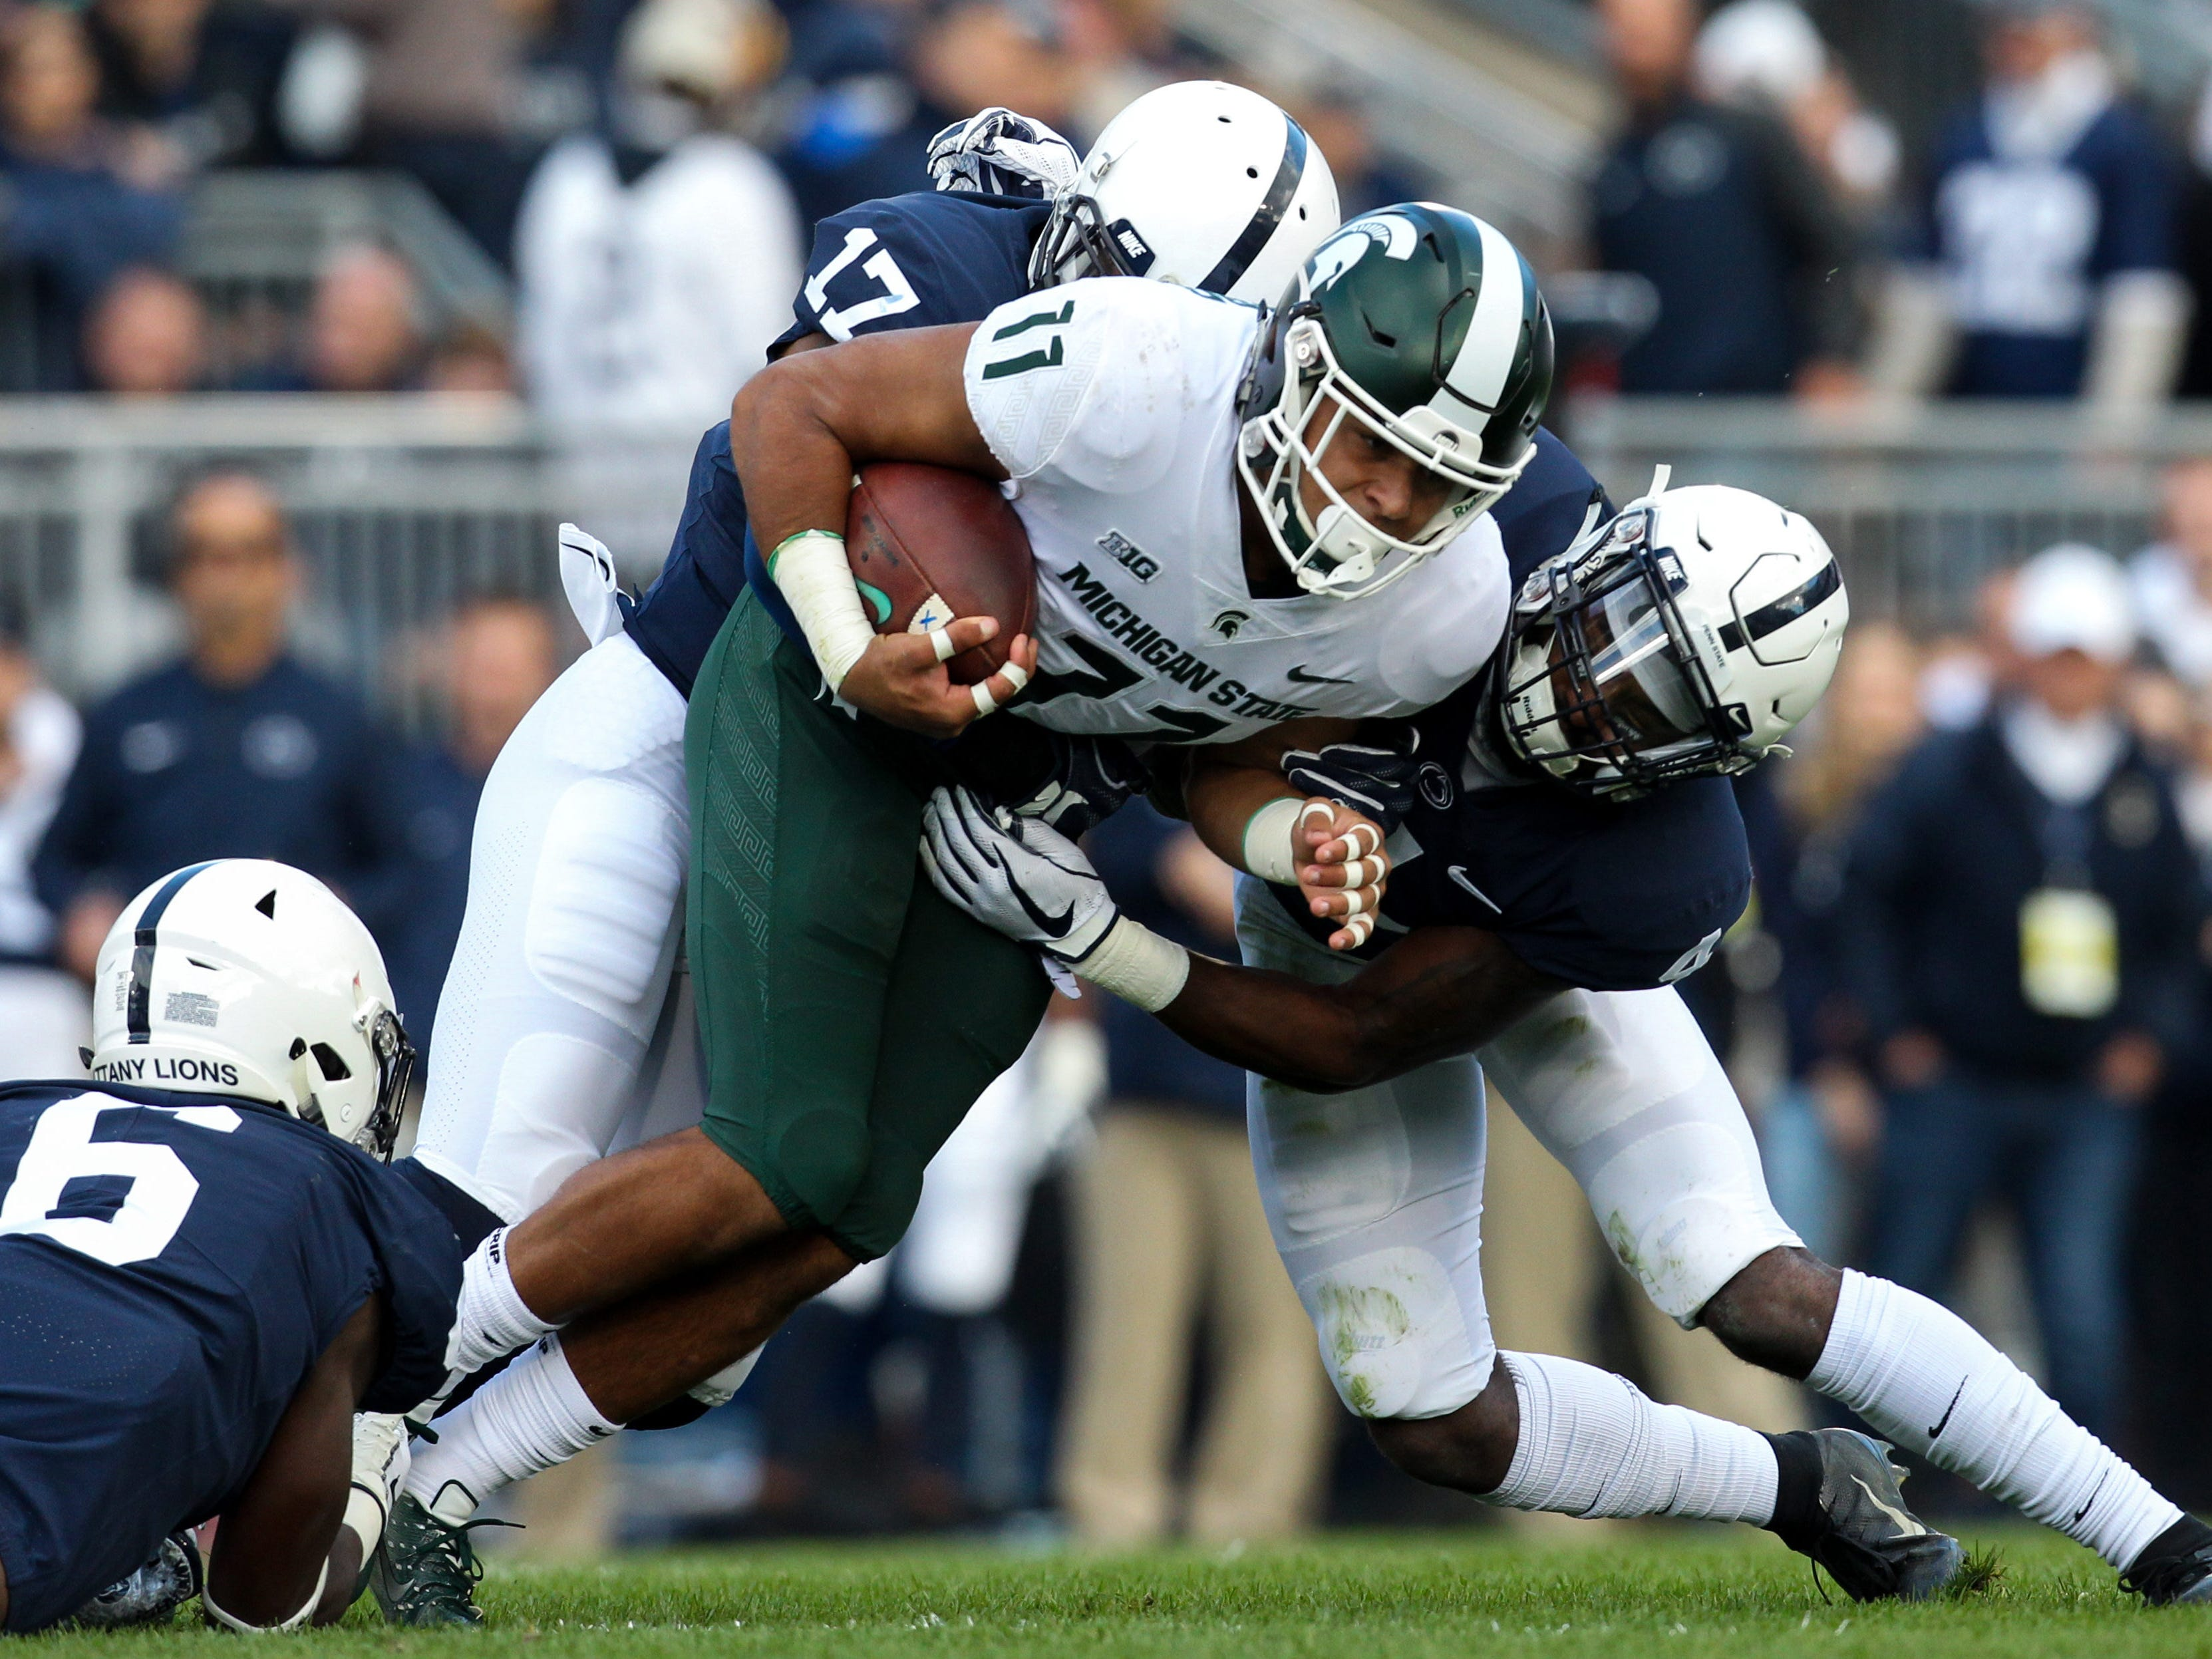 Michigan State Spartans running back Connor Heyward (11) runs with the ball as Penn State Nittany Lions safety Nick Scott (4) attempts a tackle during the first quarter at Beaver Stadium.